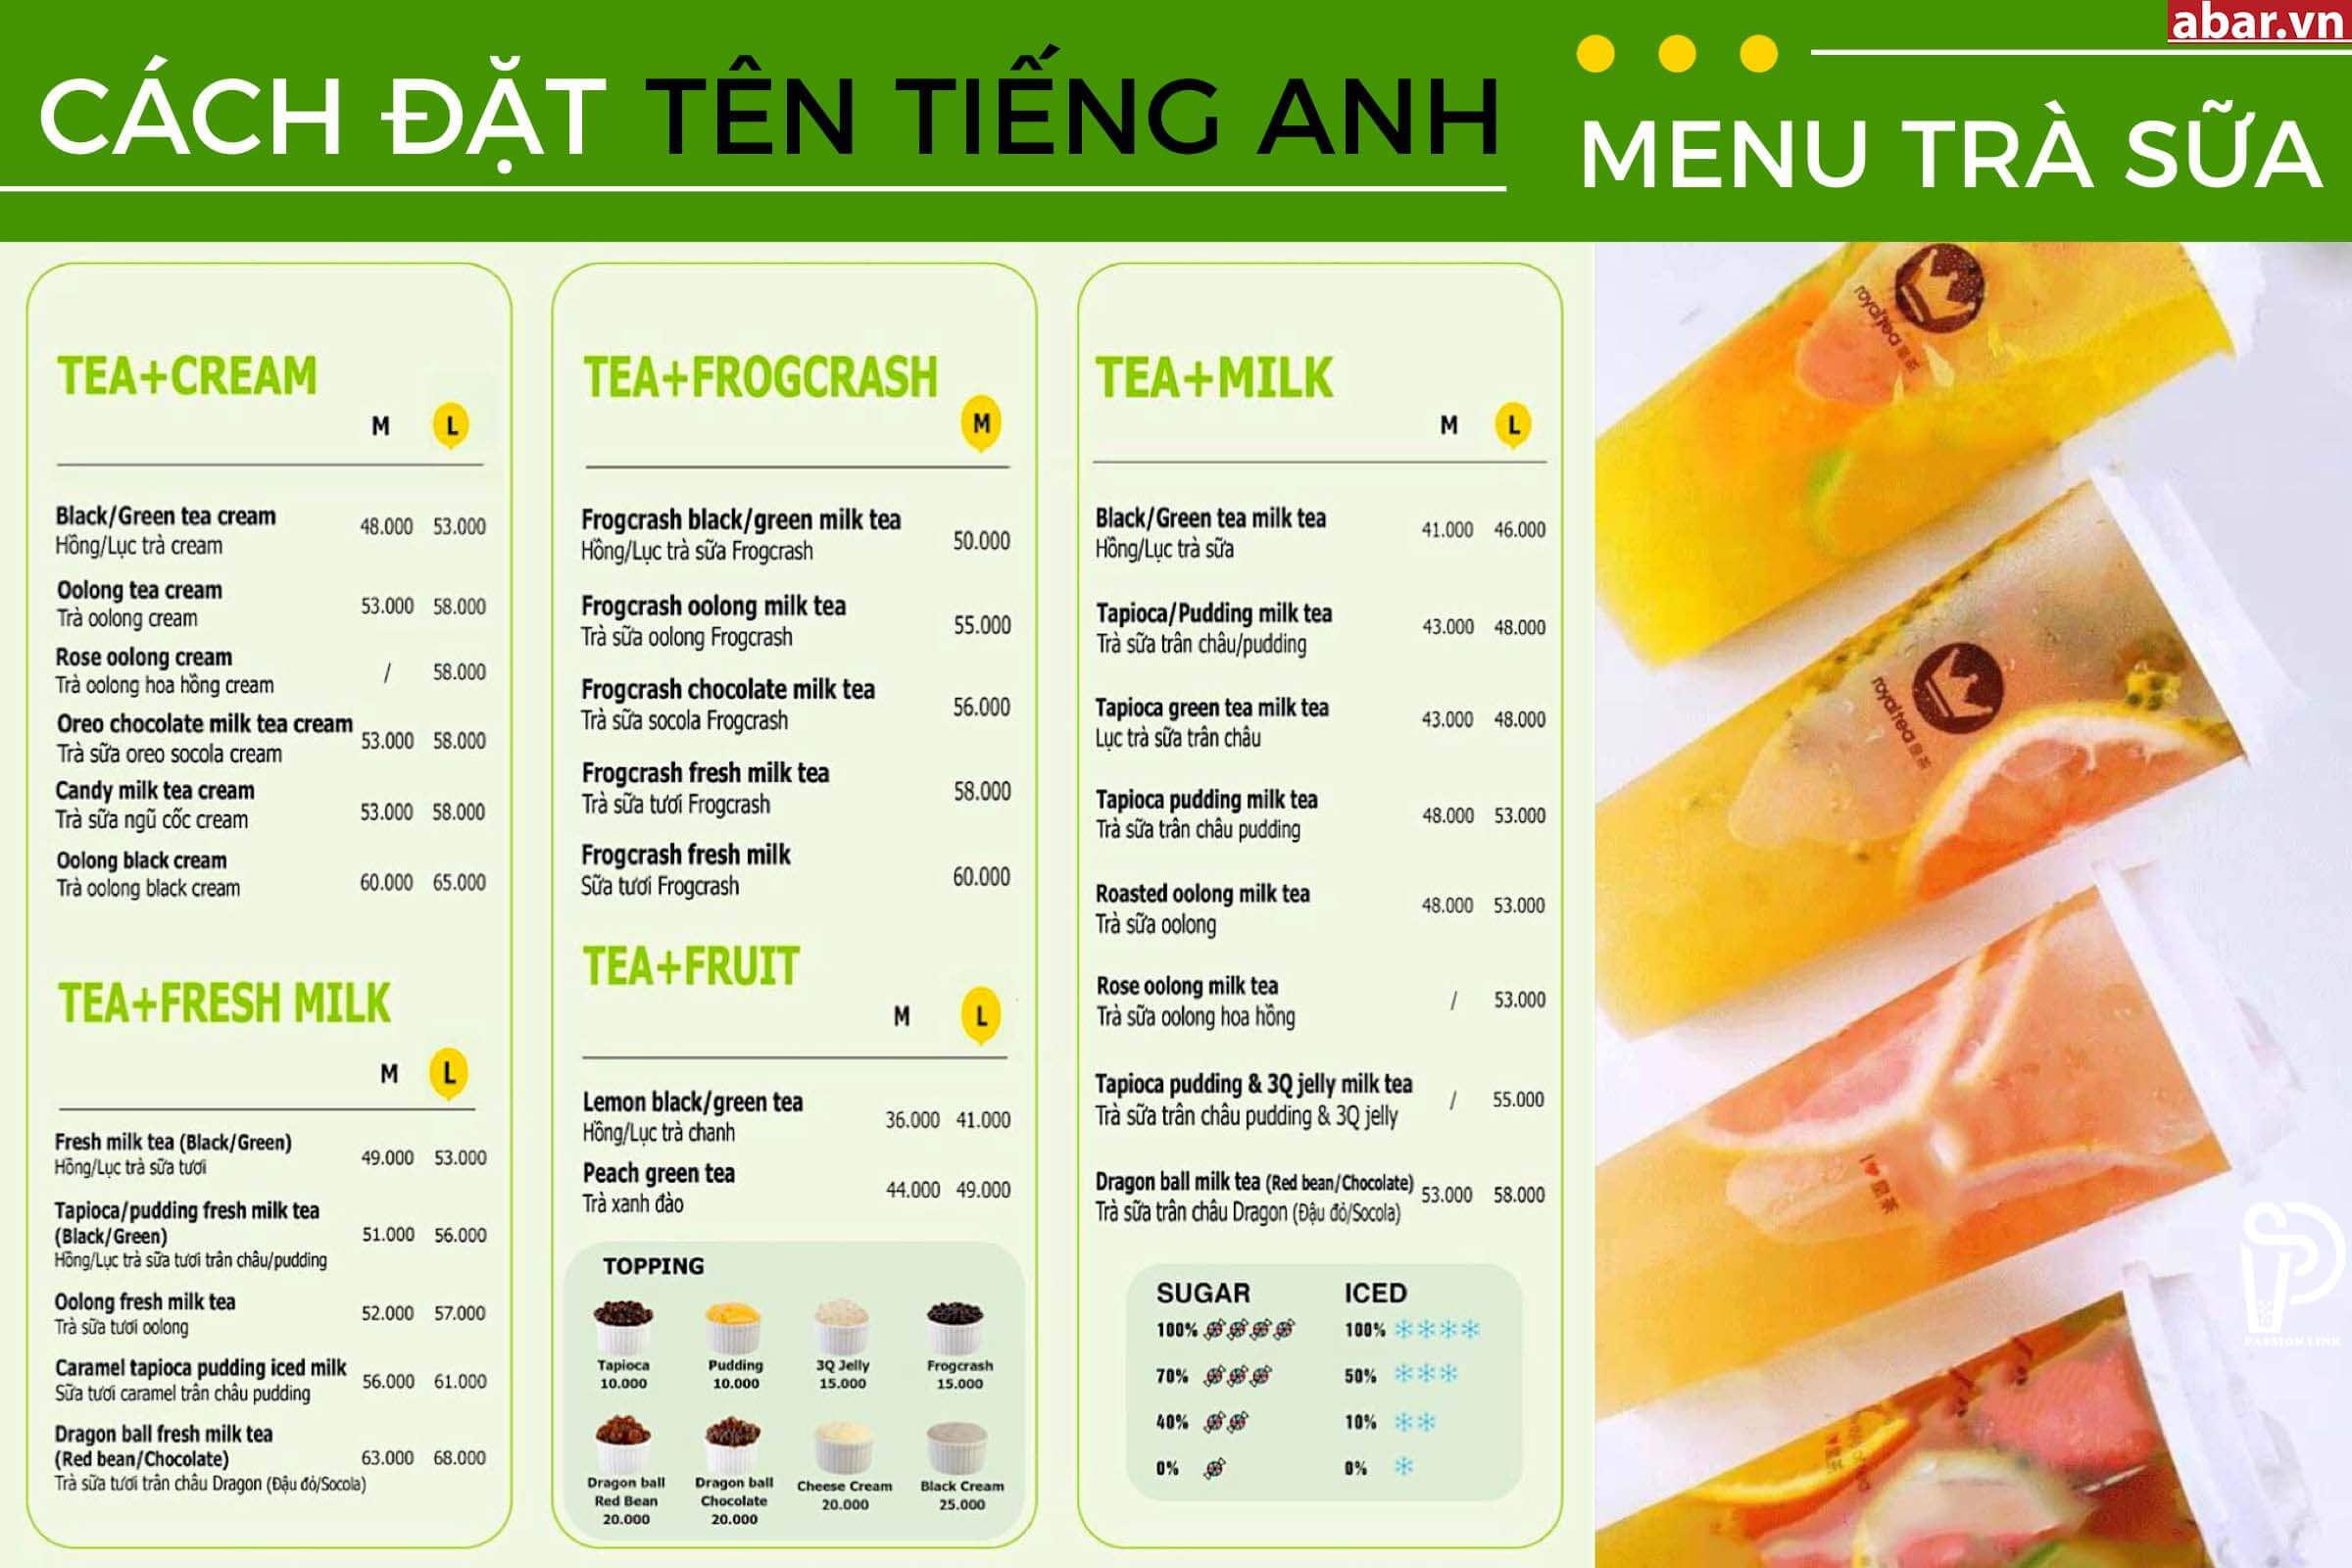 cach-dat-ten-tieng-anh-cac-mon-tra-sua-pho-bien